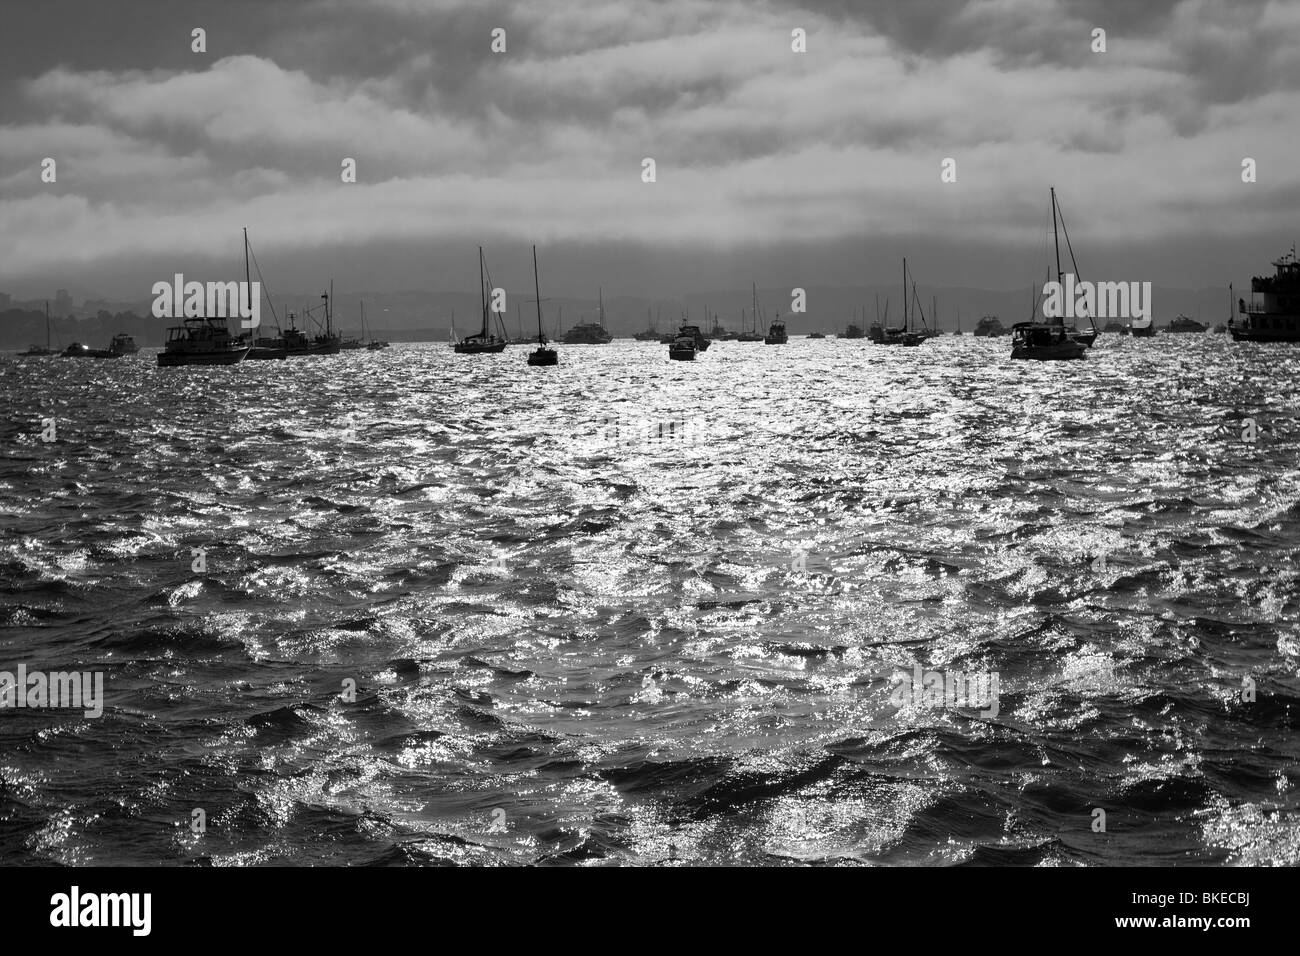 Many boats on the water in the horizon in San Francisco Bay - Stock Image